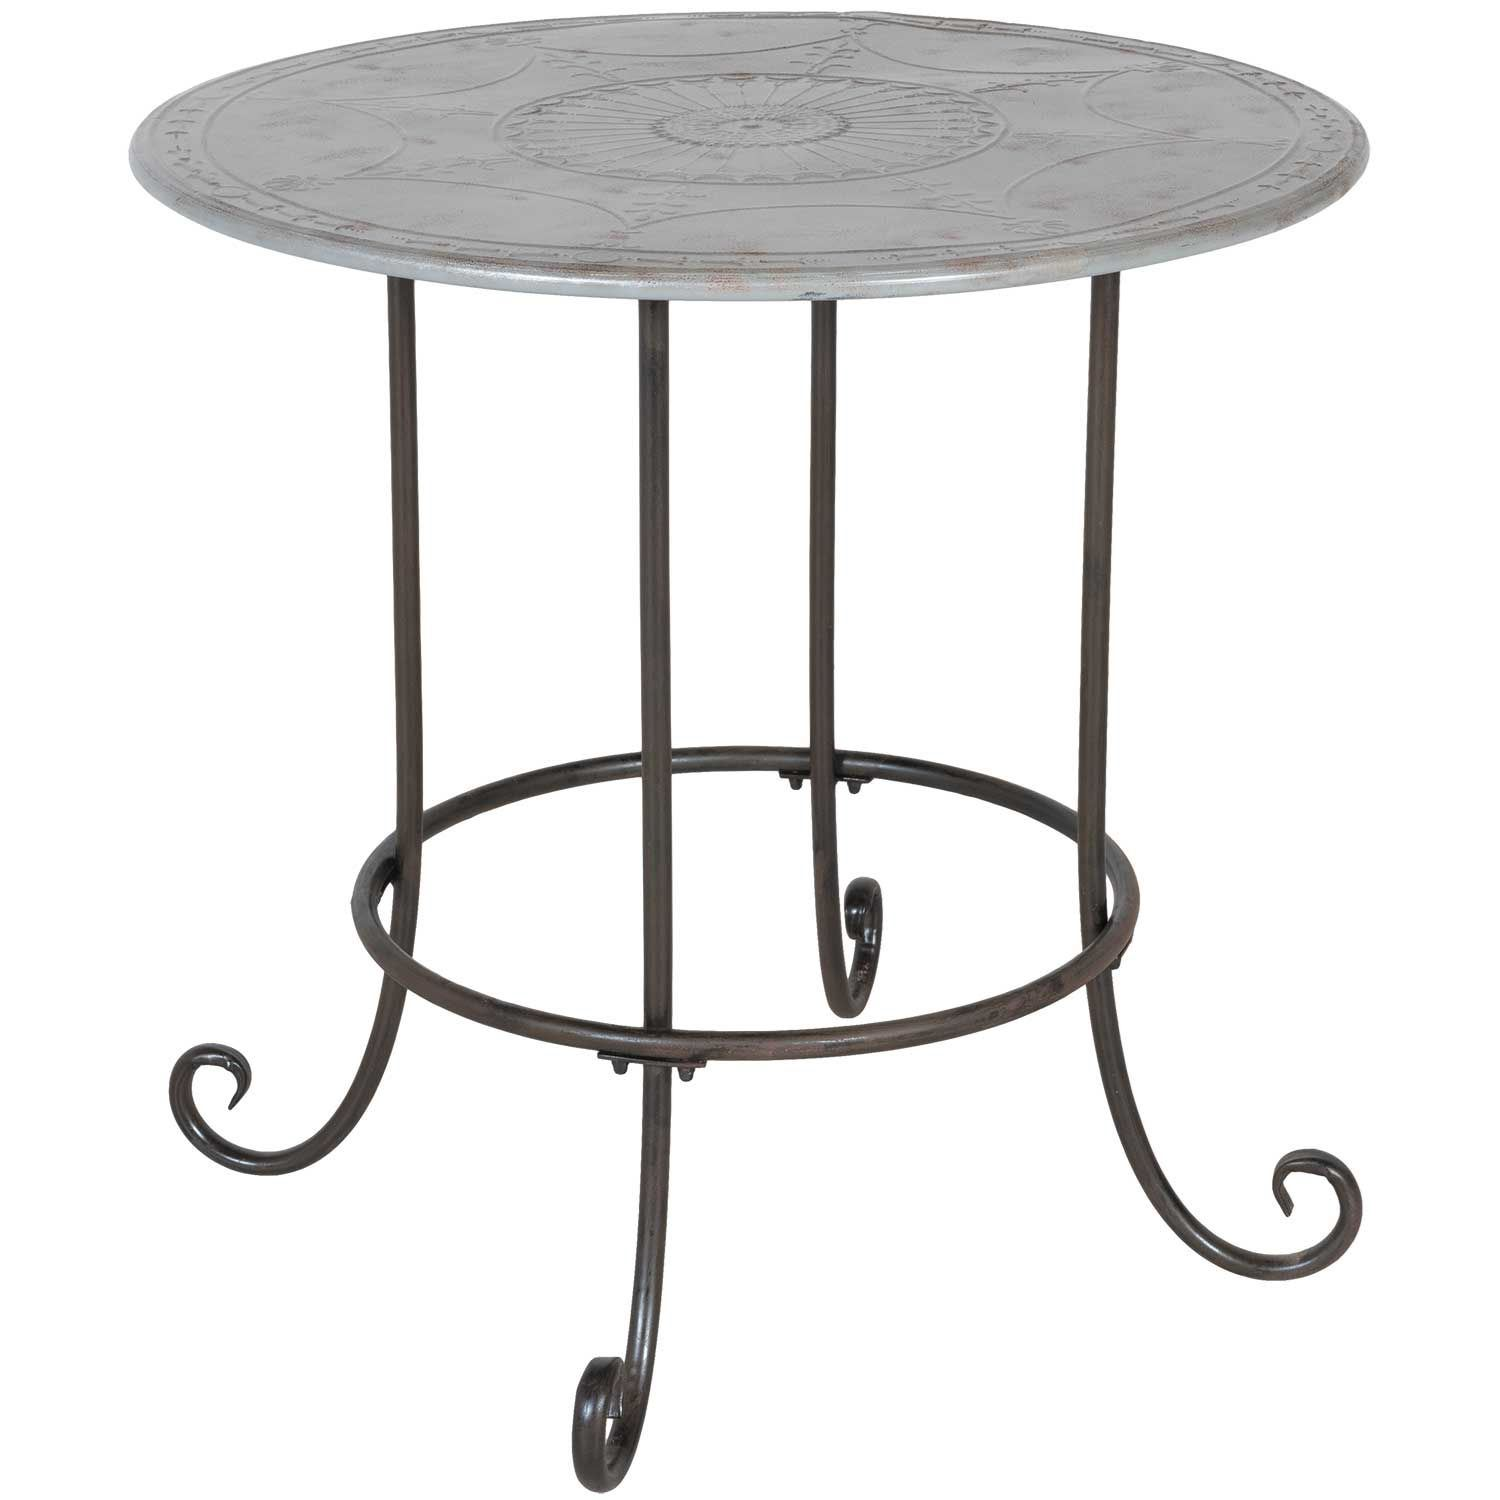 patio table outdoor side round target legs metal glass white iron base drum wrought accent corranade bronze tables top full size modern style end small square grey and unique